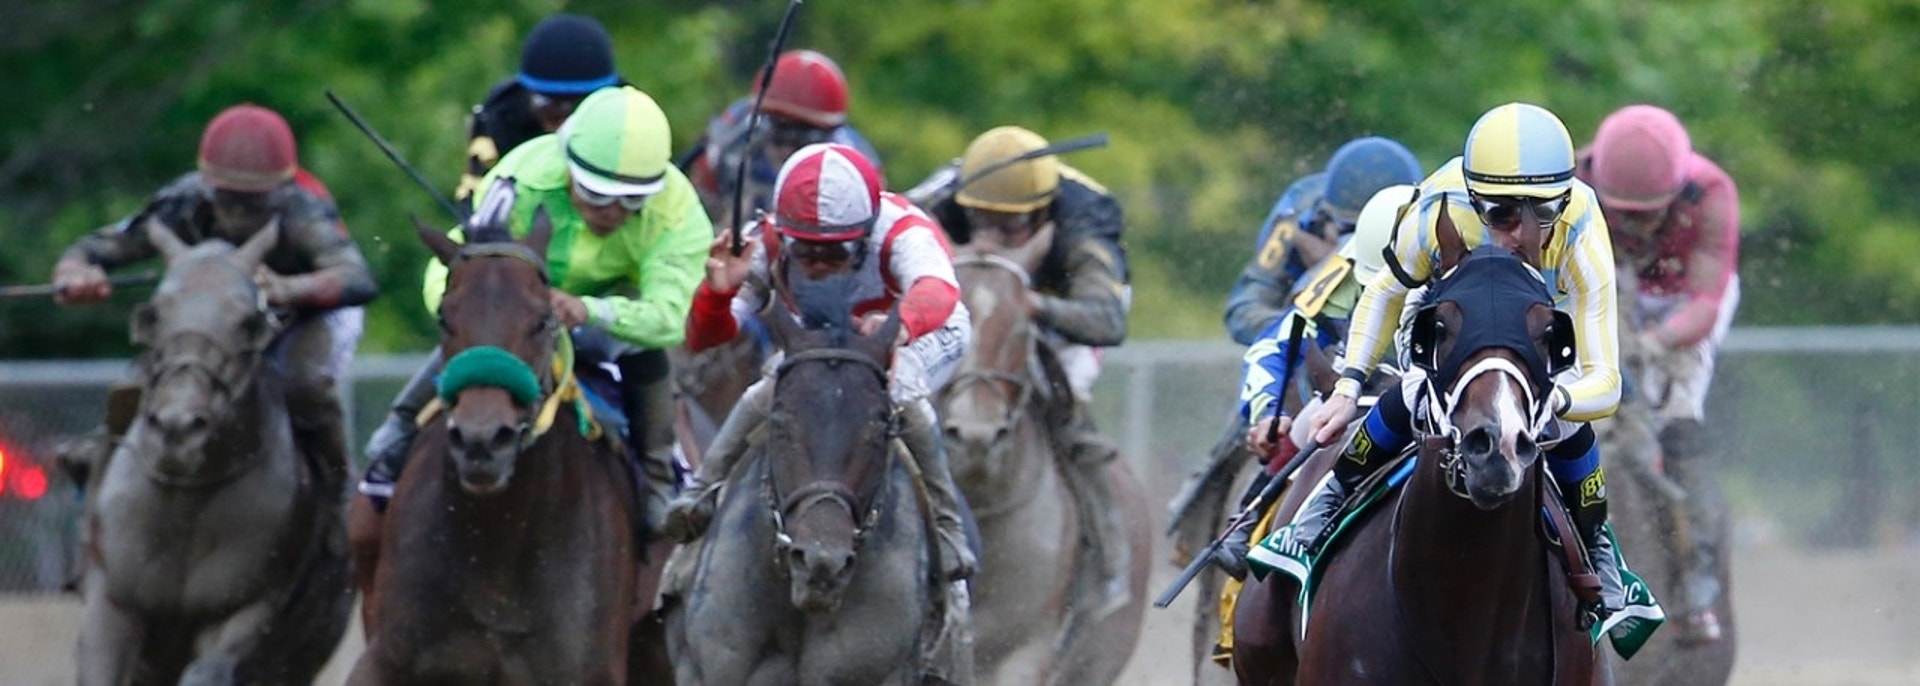 May 20, 2017; Baltimore, MD, USA; Julien R. Leparoux aboard Classic Empire (5) leads during the 142nd running of the Preakness Stakes at Pimlico Race Course. Mandatory Credit: Amber Searls-USA TODAY Sports - 10067088